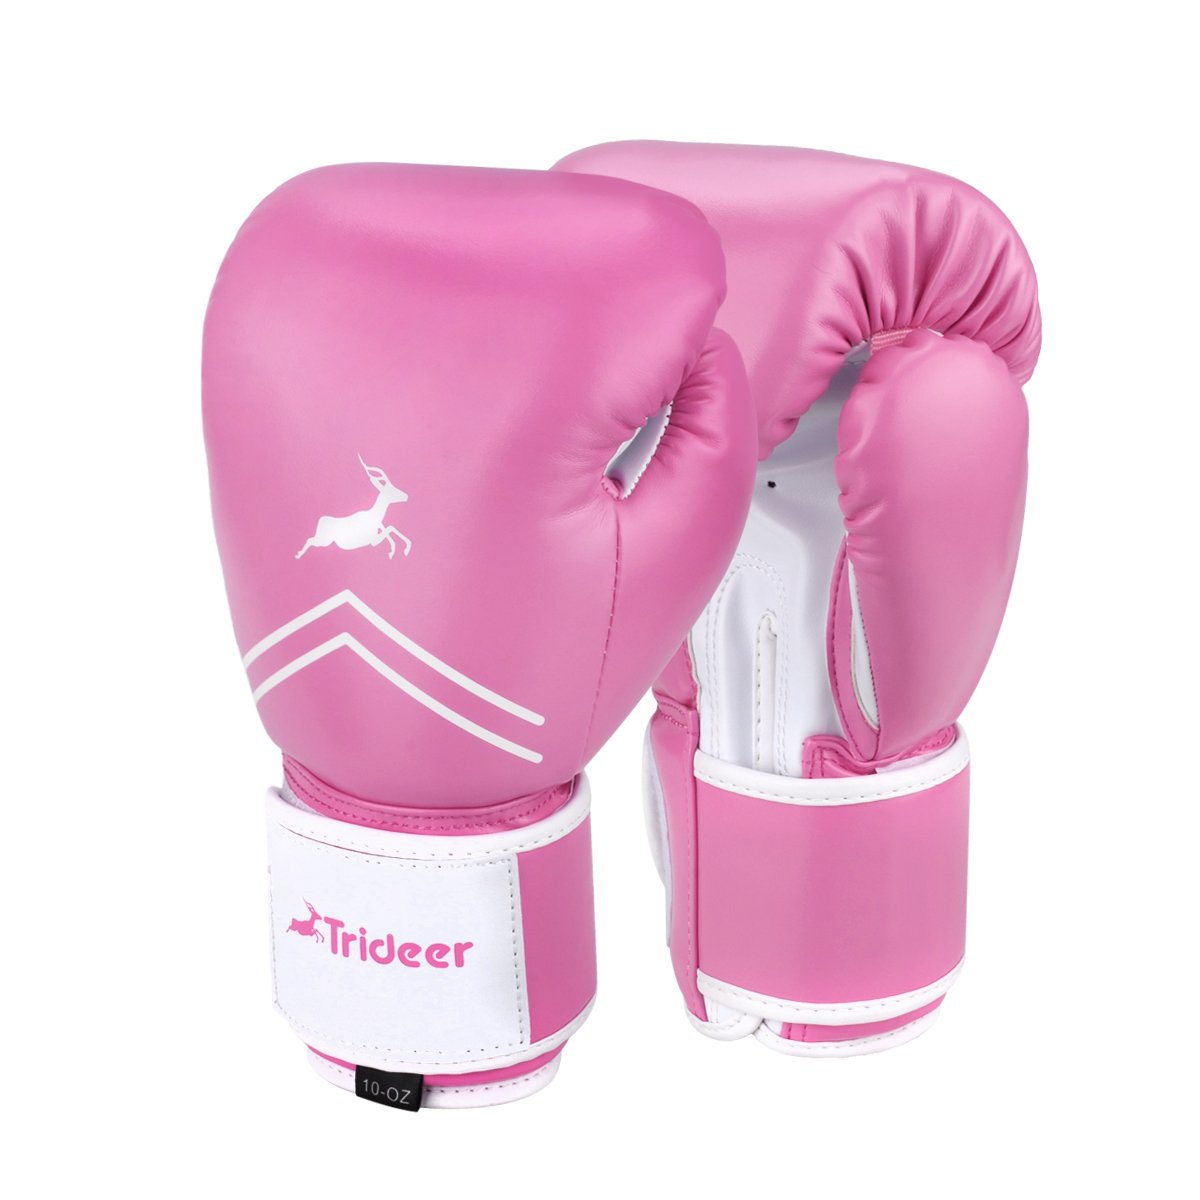 Trideer Pro Grade Boxing Gloves, Kickboxing Bagwork Gel Sparring Training Gloves, Muay Thai Style Punching Bag Mitts, Fight Gloves Men & Women (Pink, 10 oz)